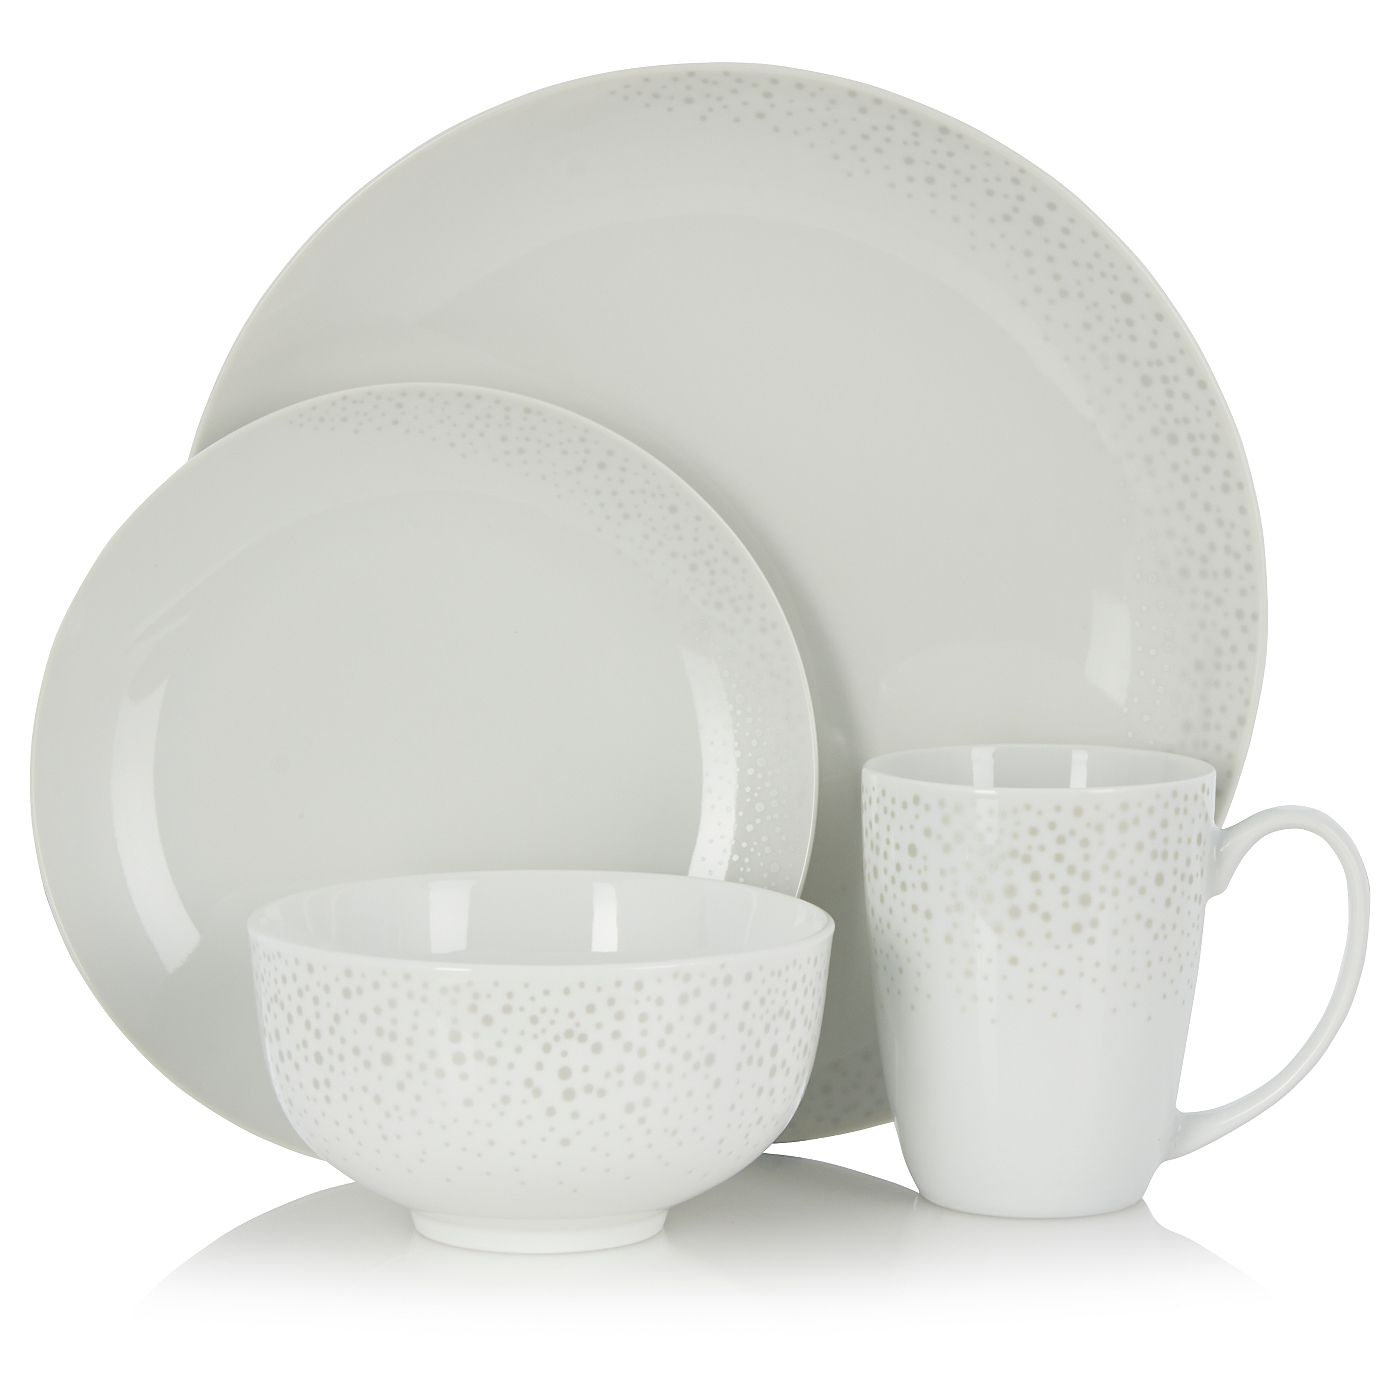 George Home 16 Piece Silver Scatter Dinner Set Tableware Asda Direct George Home Dinner Sets Tableware